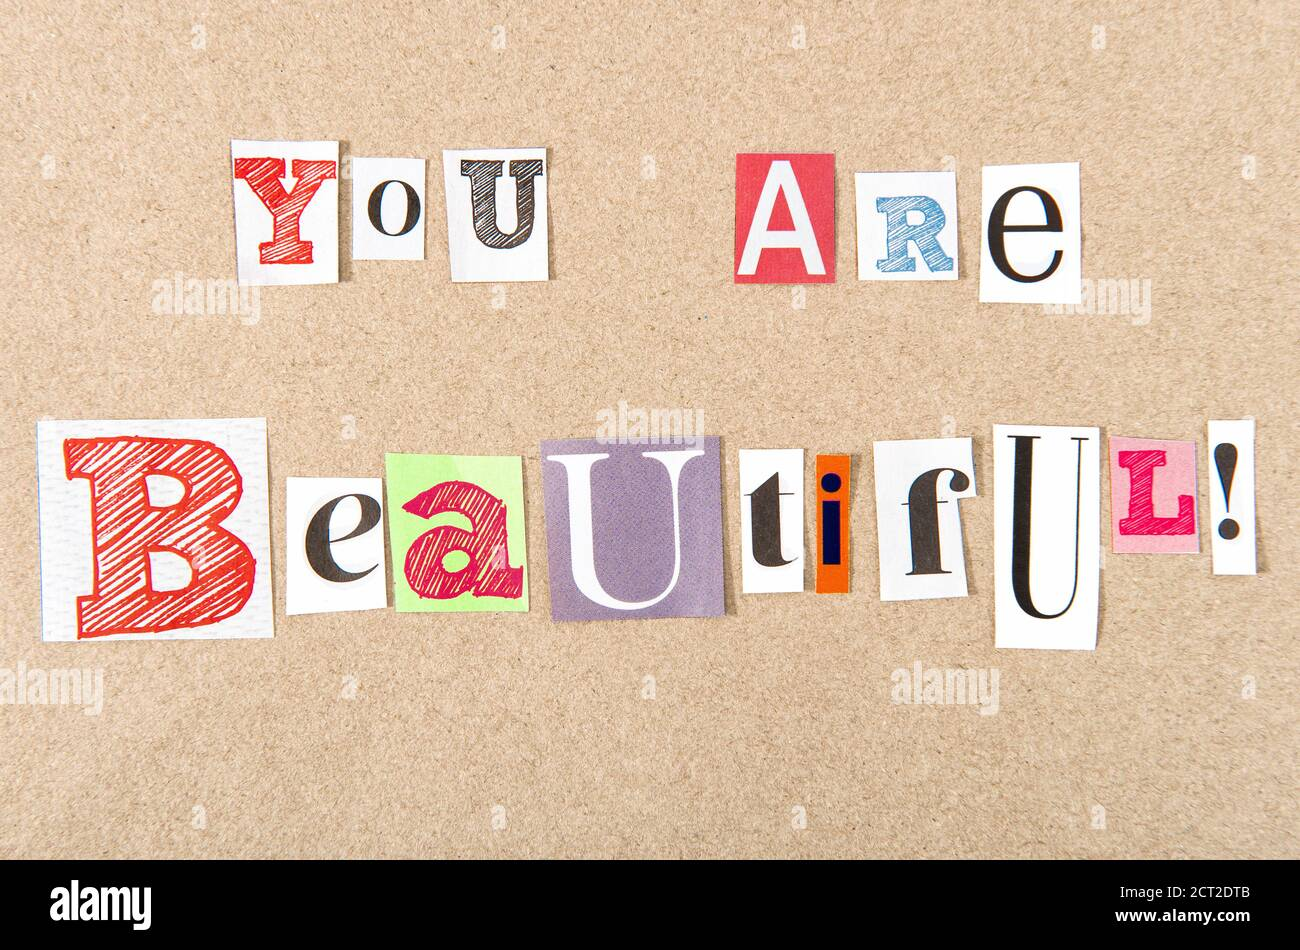 Paper cut letters. Newspaper magazine cutouts. Ransom style collage You are beautiful Stock Photo